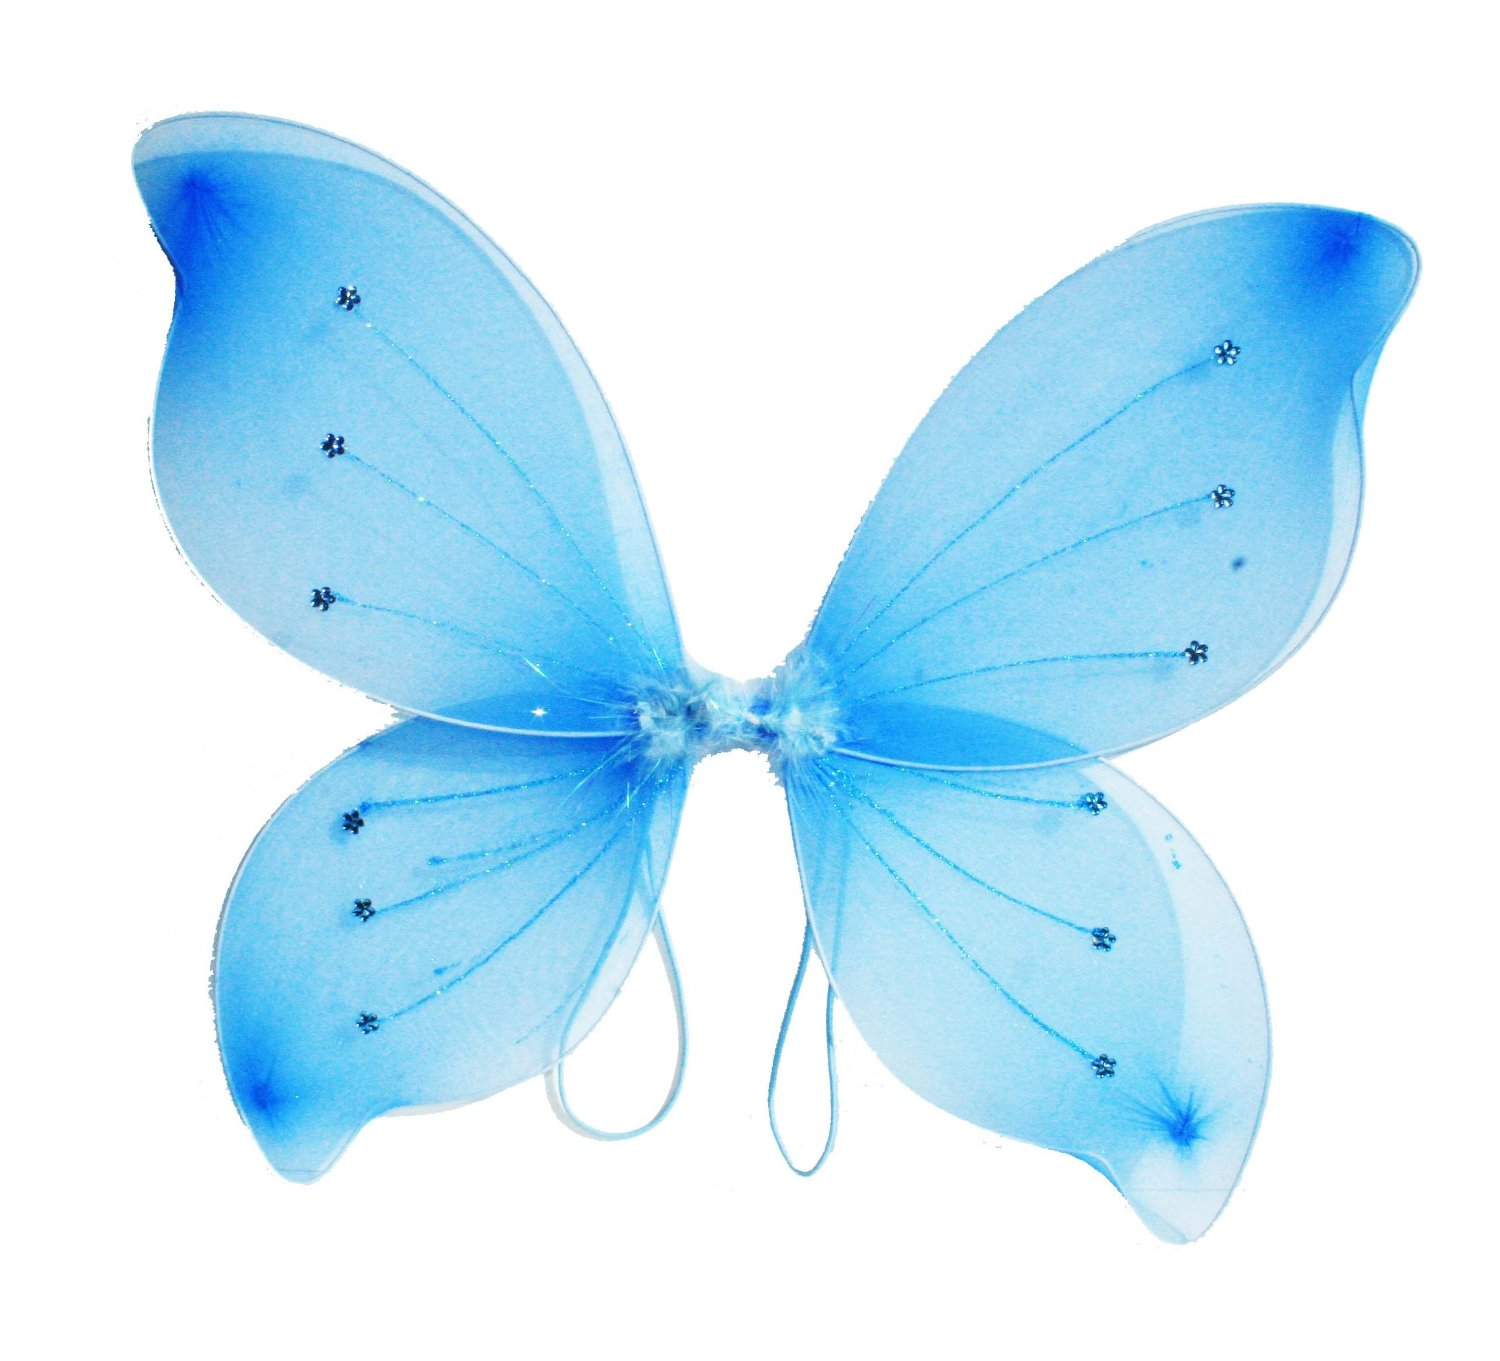 81O1mhTLSDL. SL1500  Amazon: 16x18 Fairy Wings Butterfly Costume   Light Blue Only $5.58 Shipped